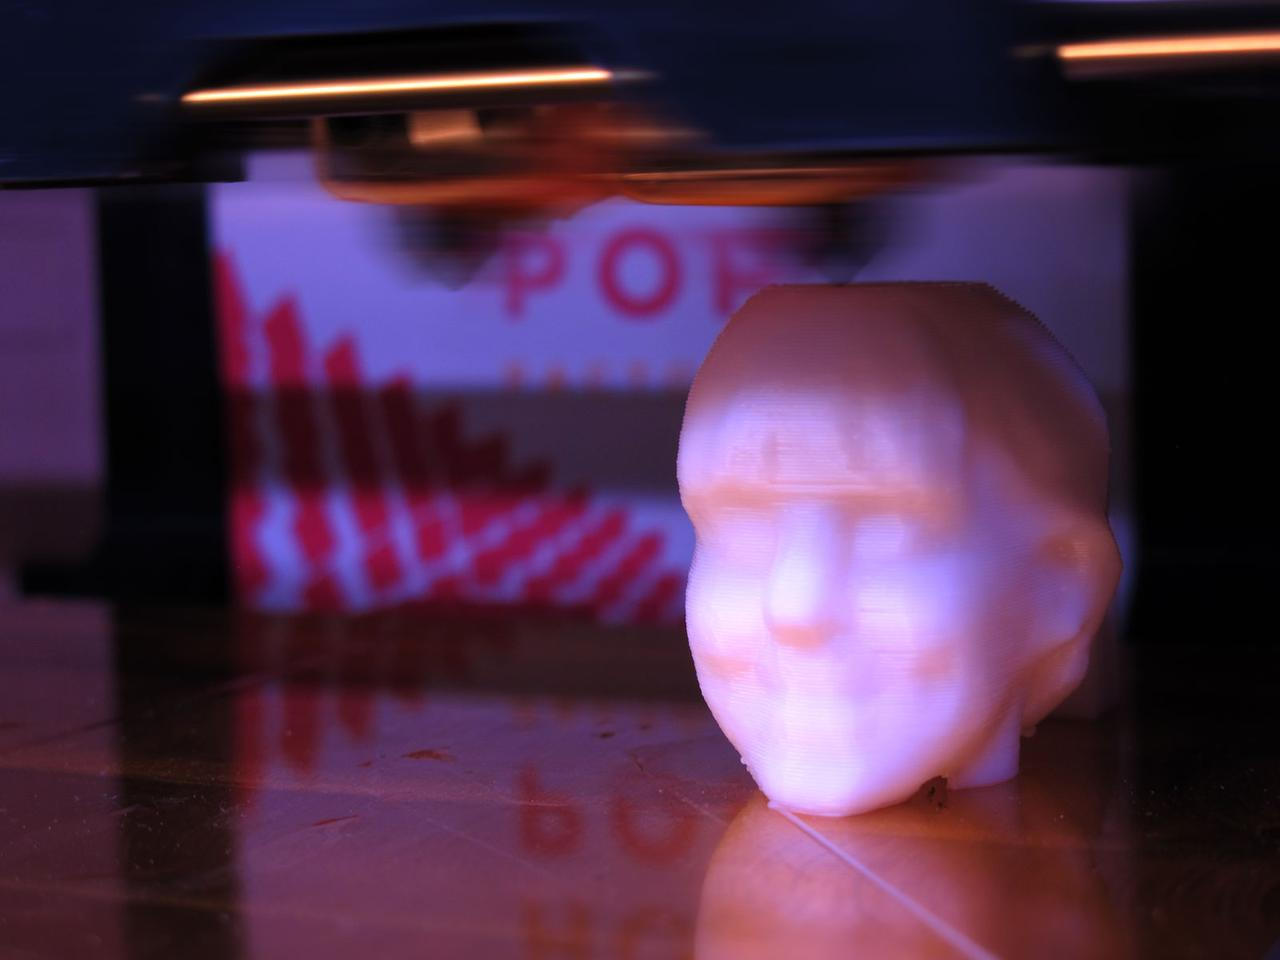 Using 3D capturing software from ReconstructMe and an Xbox Kinect sensor, the designers were able to quickly make the 3D models they needed